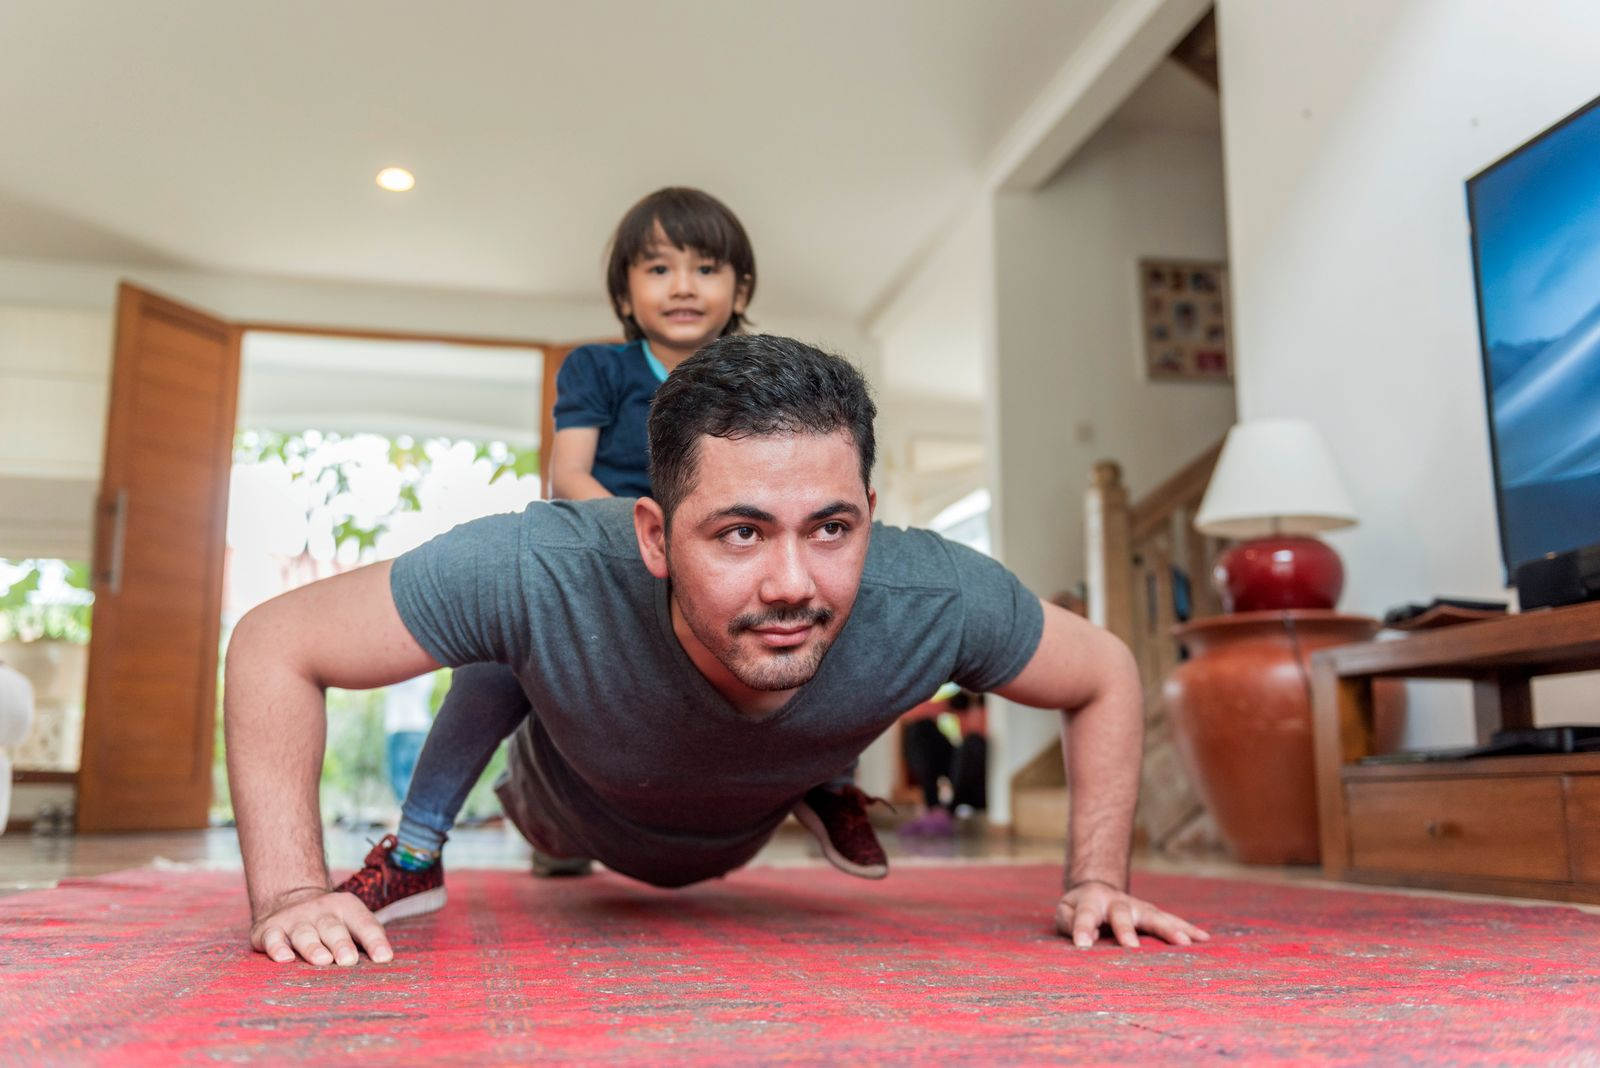 Father and son doing push up on a living room